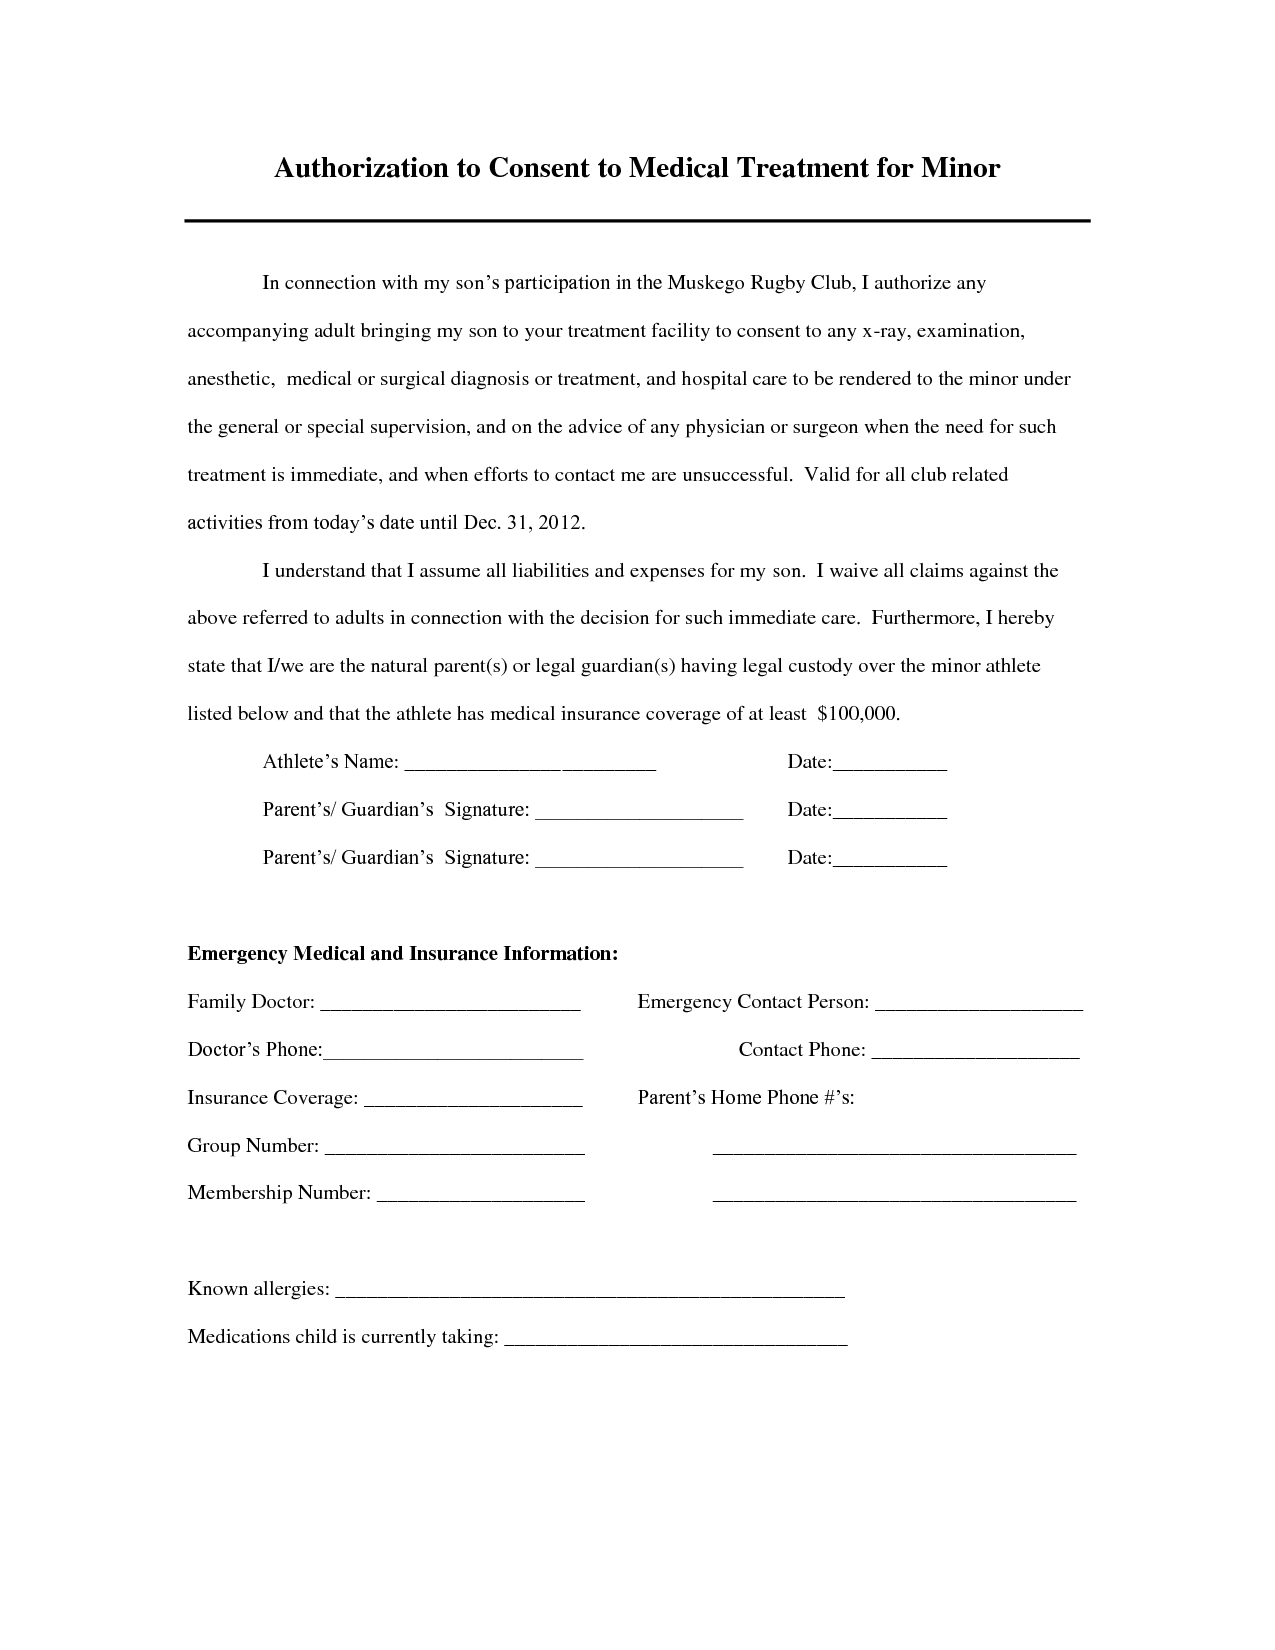 Minor Medical Treatment Authorization Letter And Consent Sample Child Care